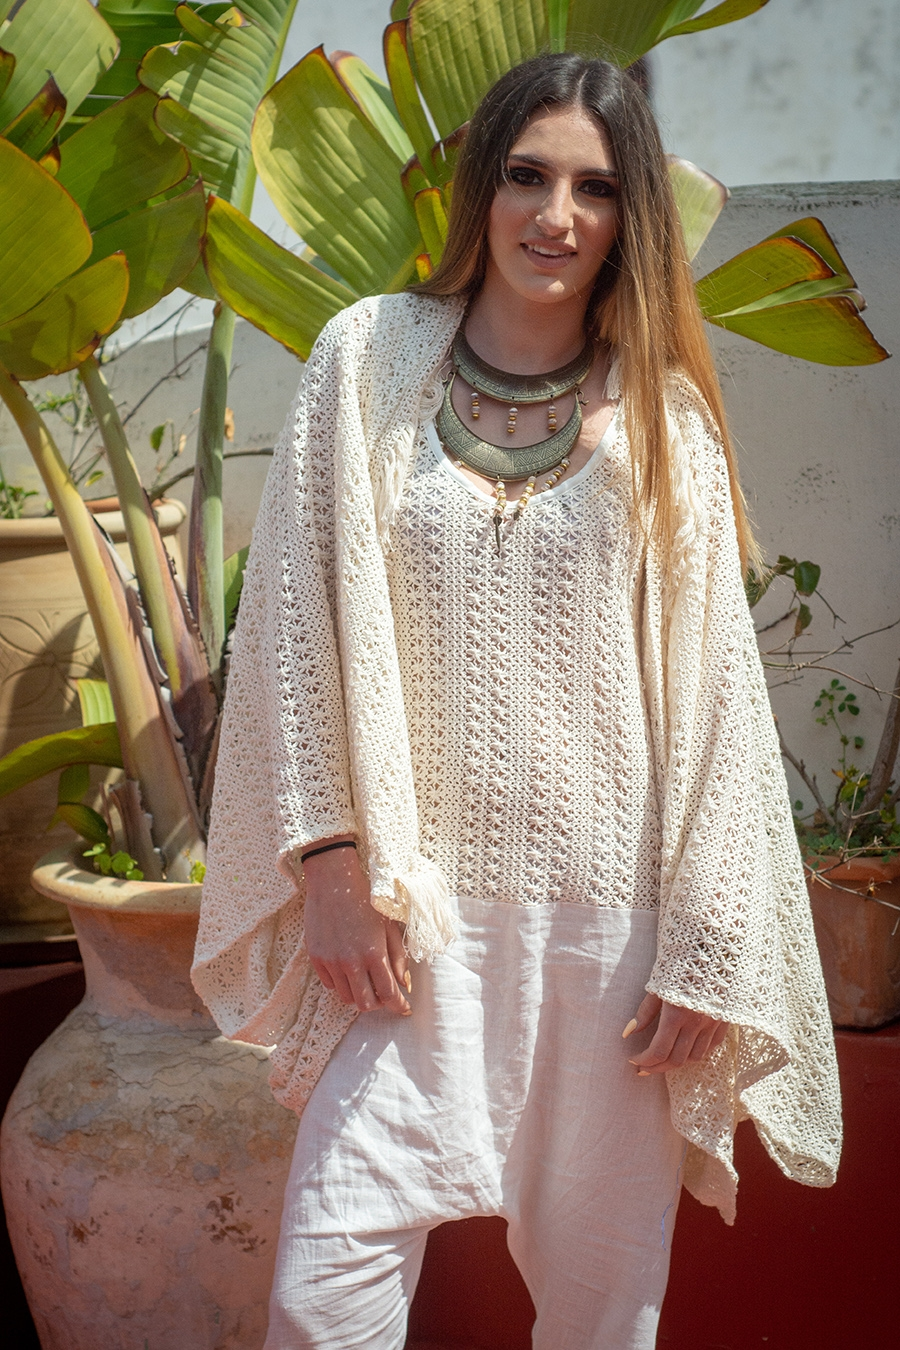 SUMMER 19 – BOHO CHIC – GILET OVERSIZE COURT EN CROCHET – TENDANCE UNIQUE – MONACO